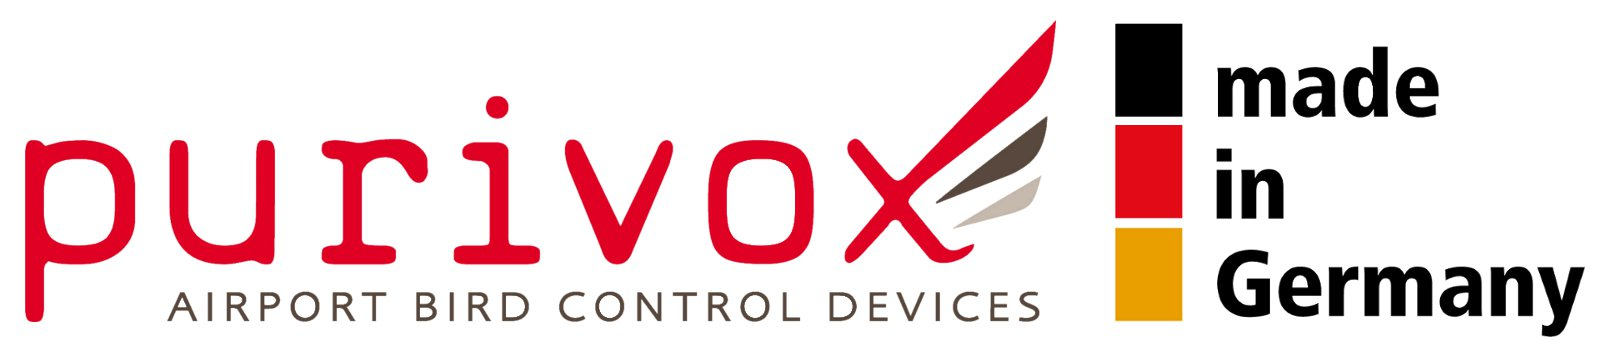 Purivox Birdstrike - airport bird control devices